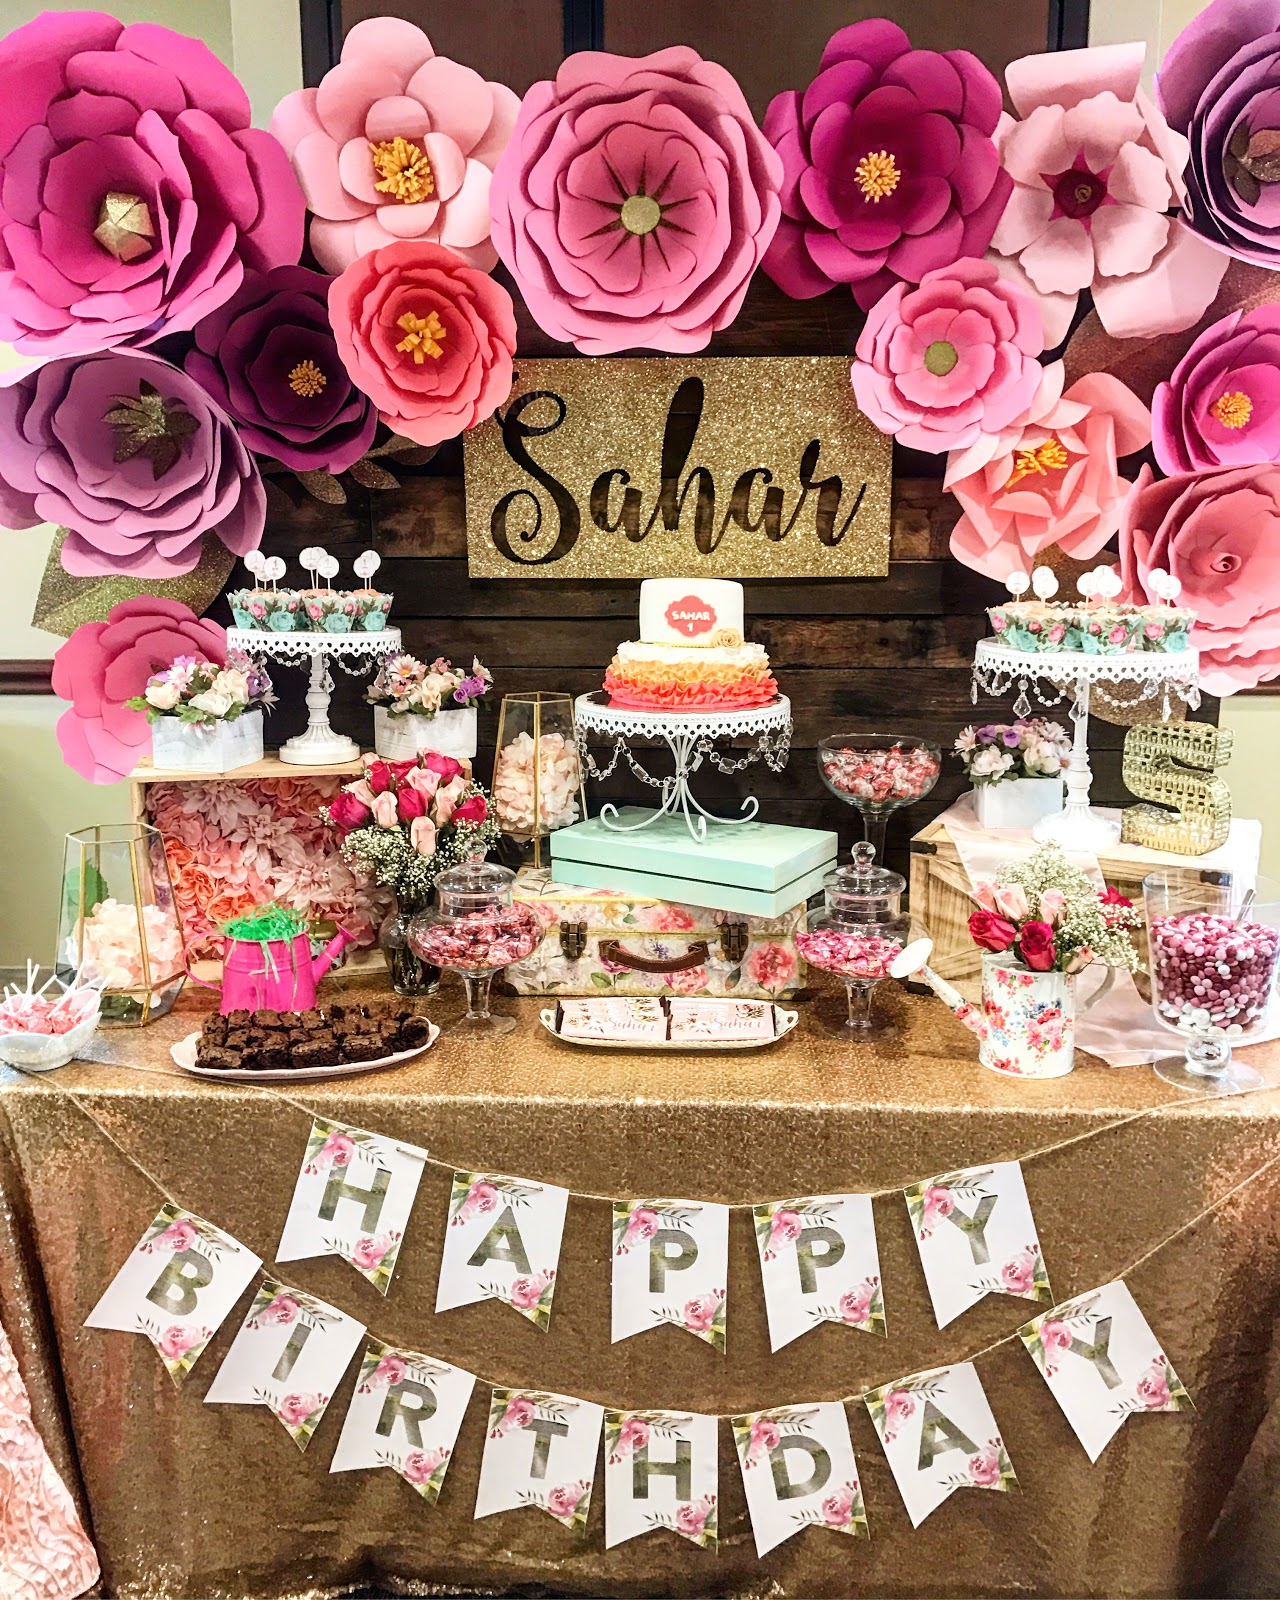 Live learn laugh sahars flower garden first birthday party hope this helps with your own party planning for anything i missed feel free to reach out izmirmasajfo